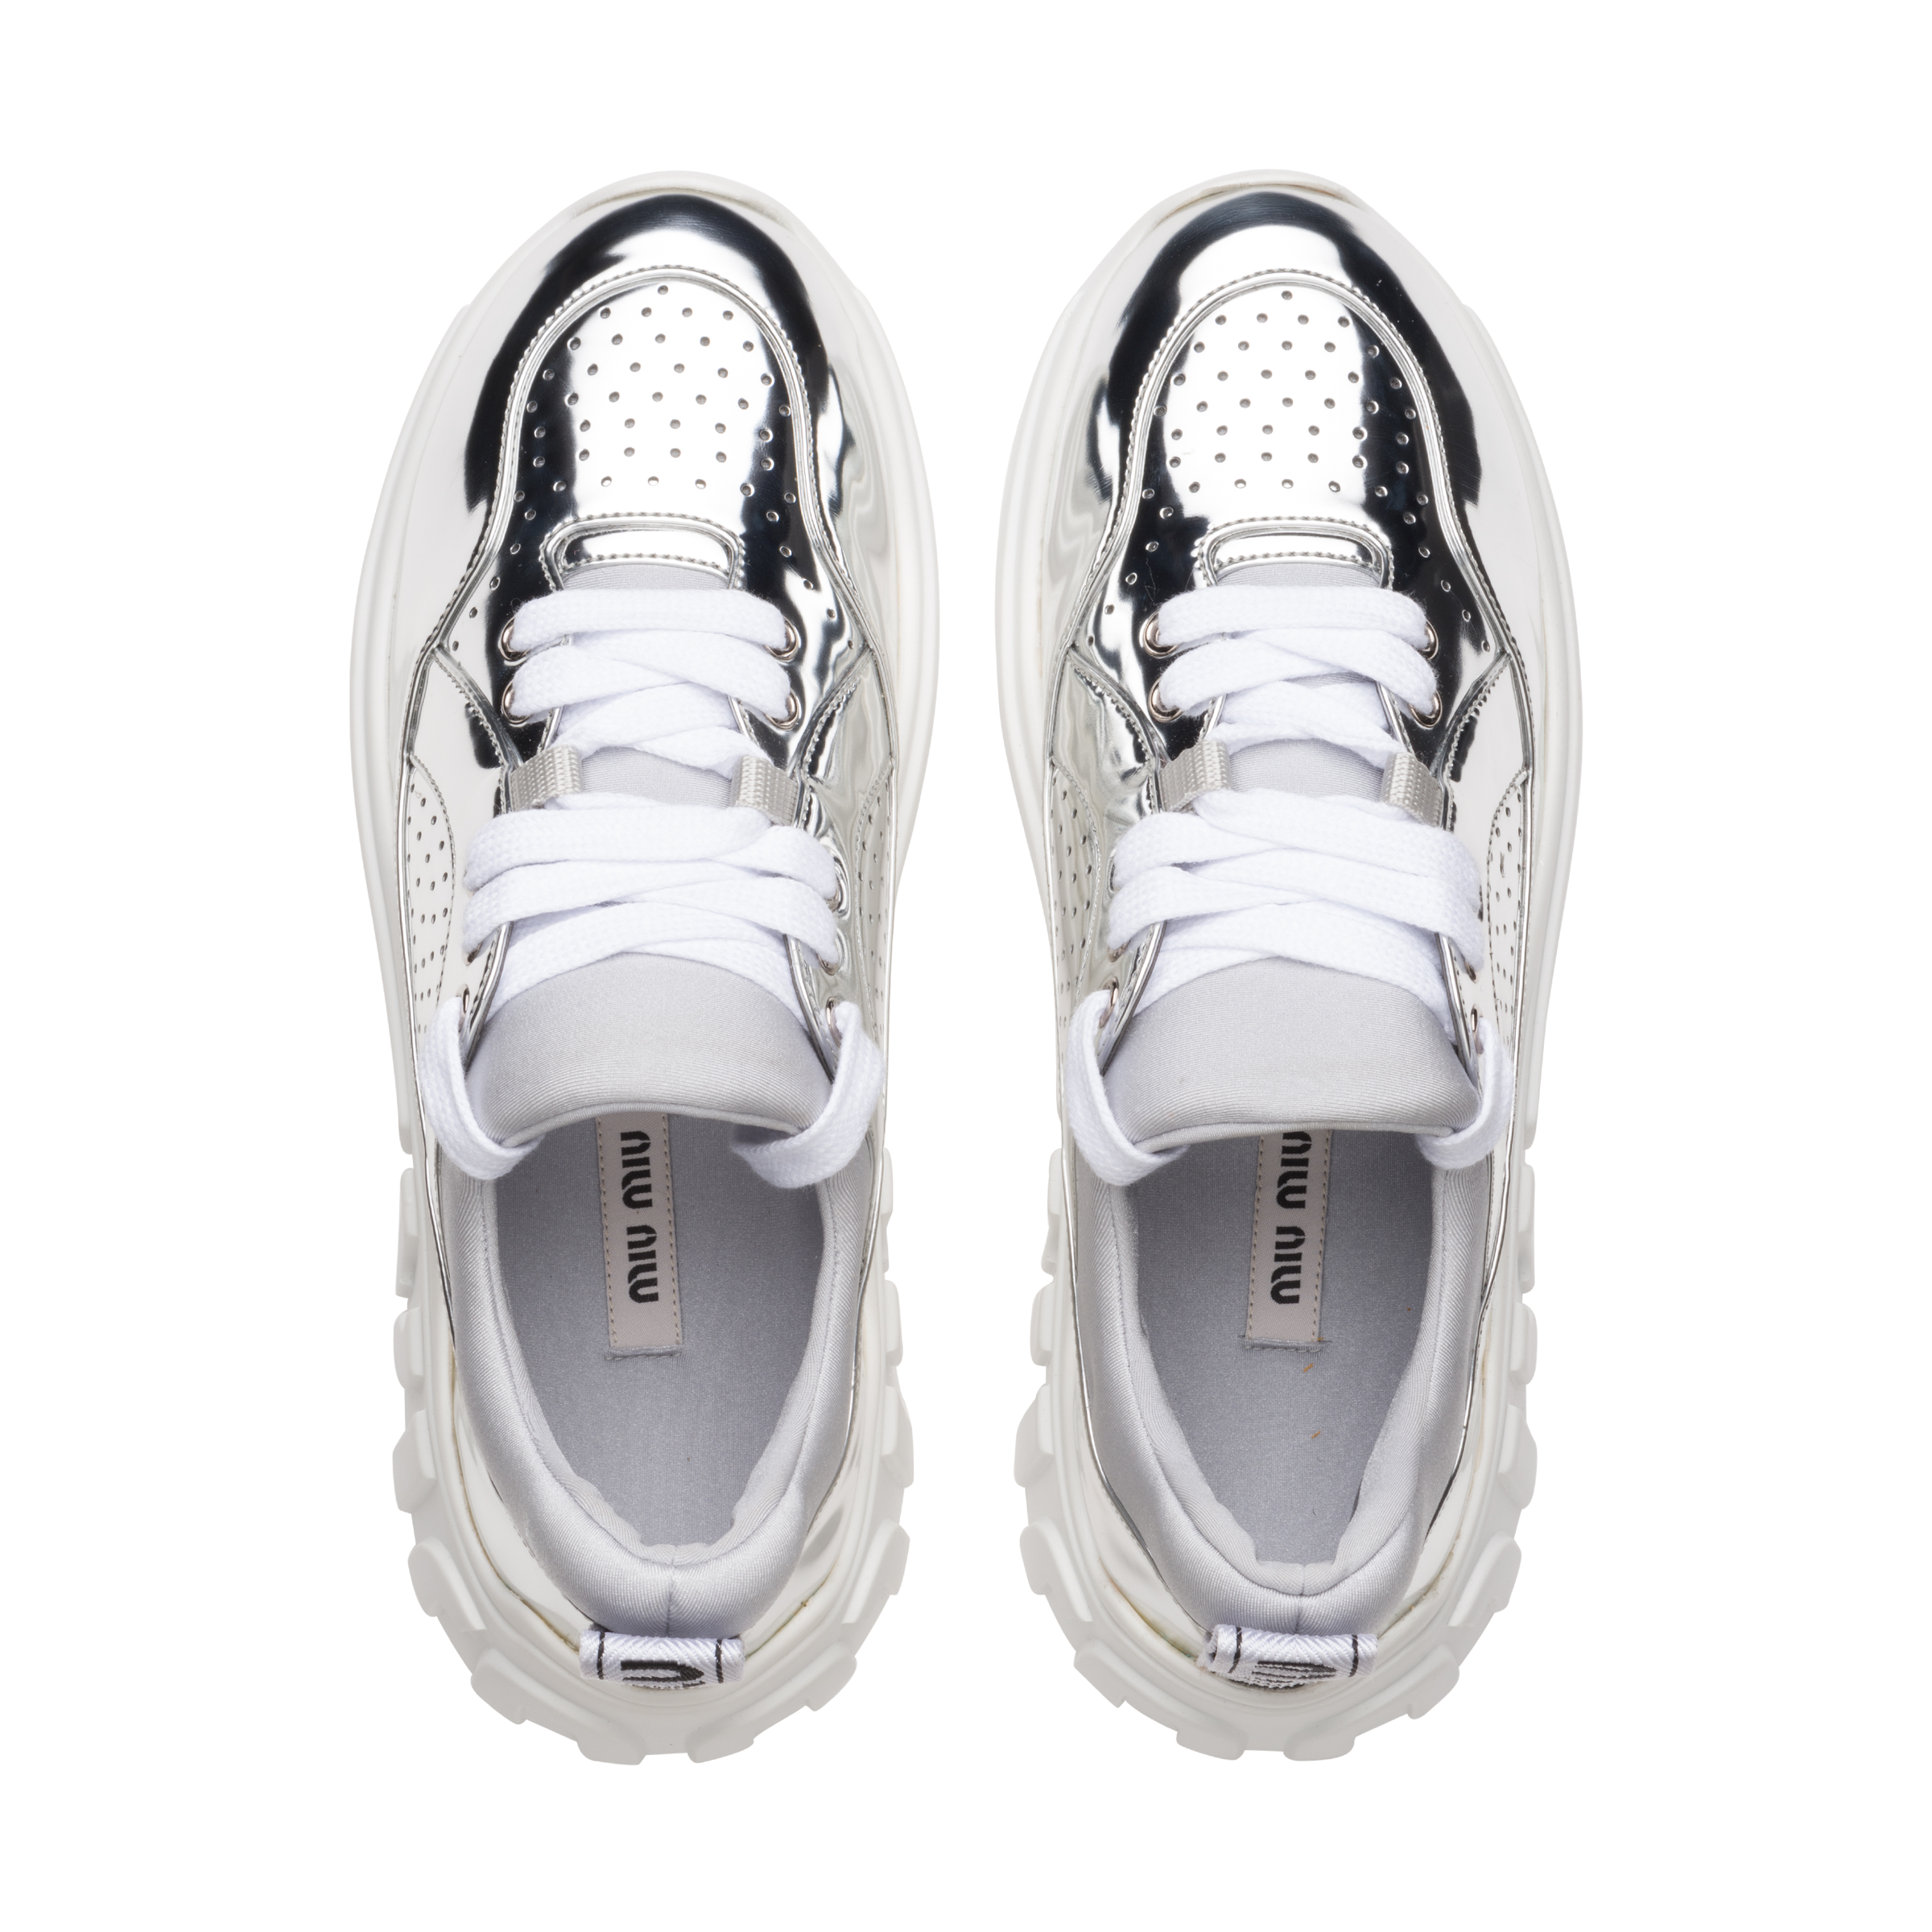 Miu Sneakers Funktionsgewebe Sneakers Run Miu Miu Metall Funktionsgewebe Run Run Metall OXiuwkZPT